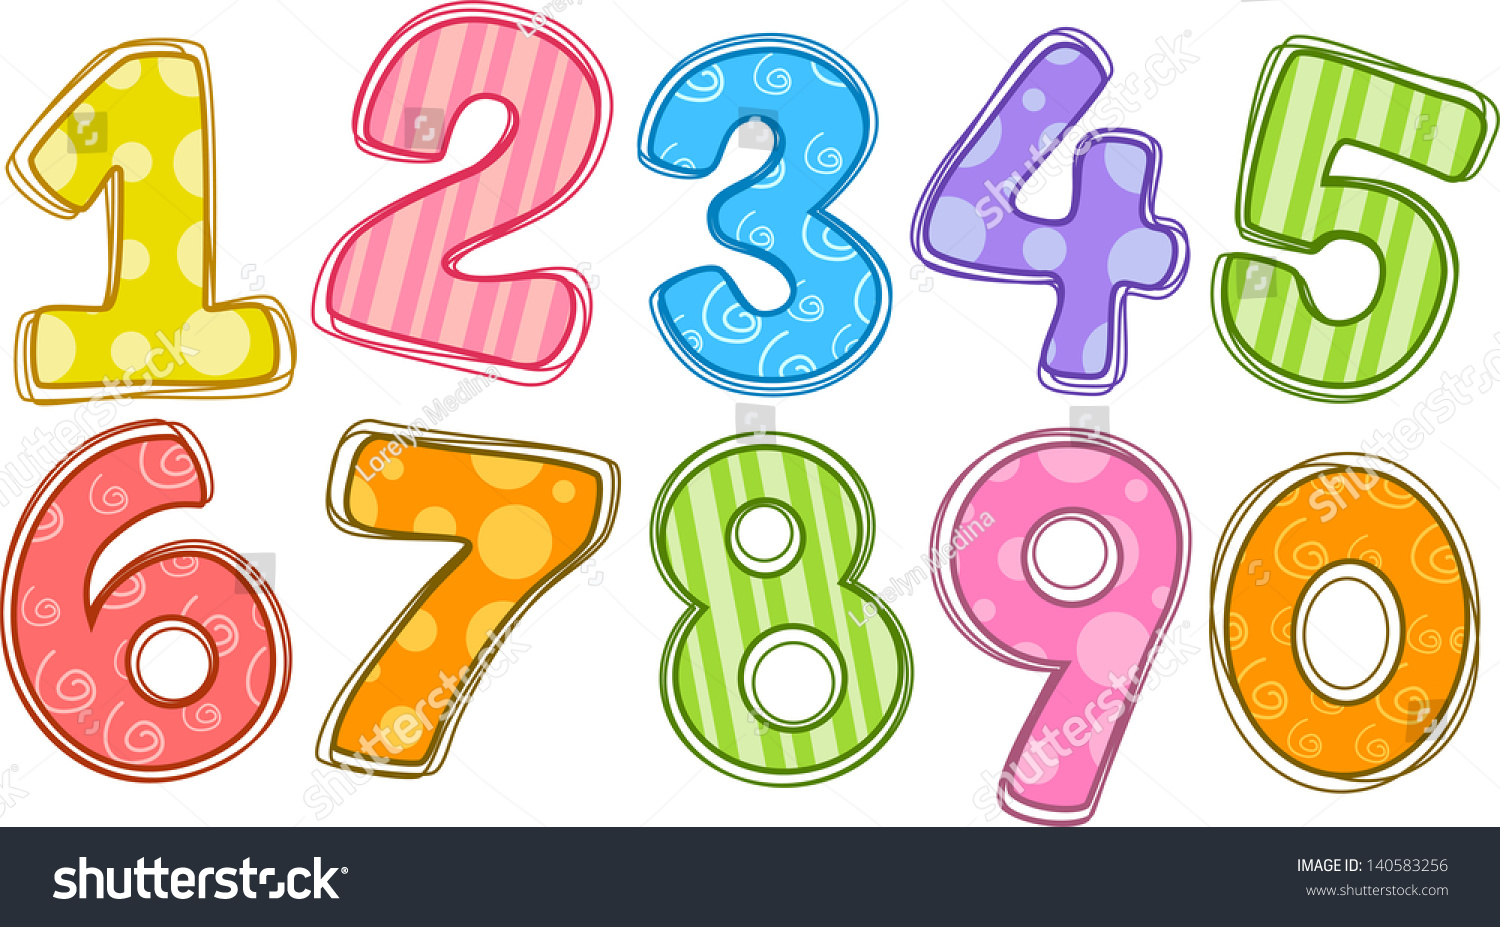 Stock Vector Illustration Of Colorful Numbers on Color By Numbers For Kids